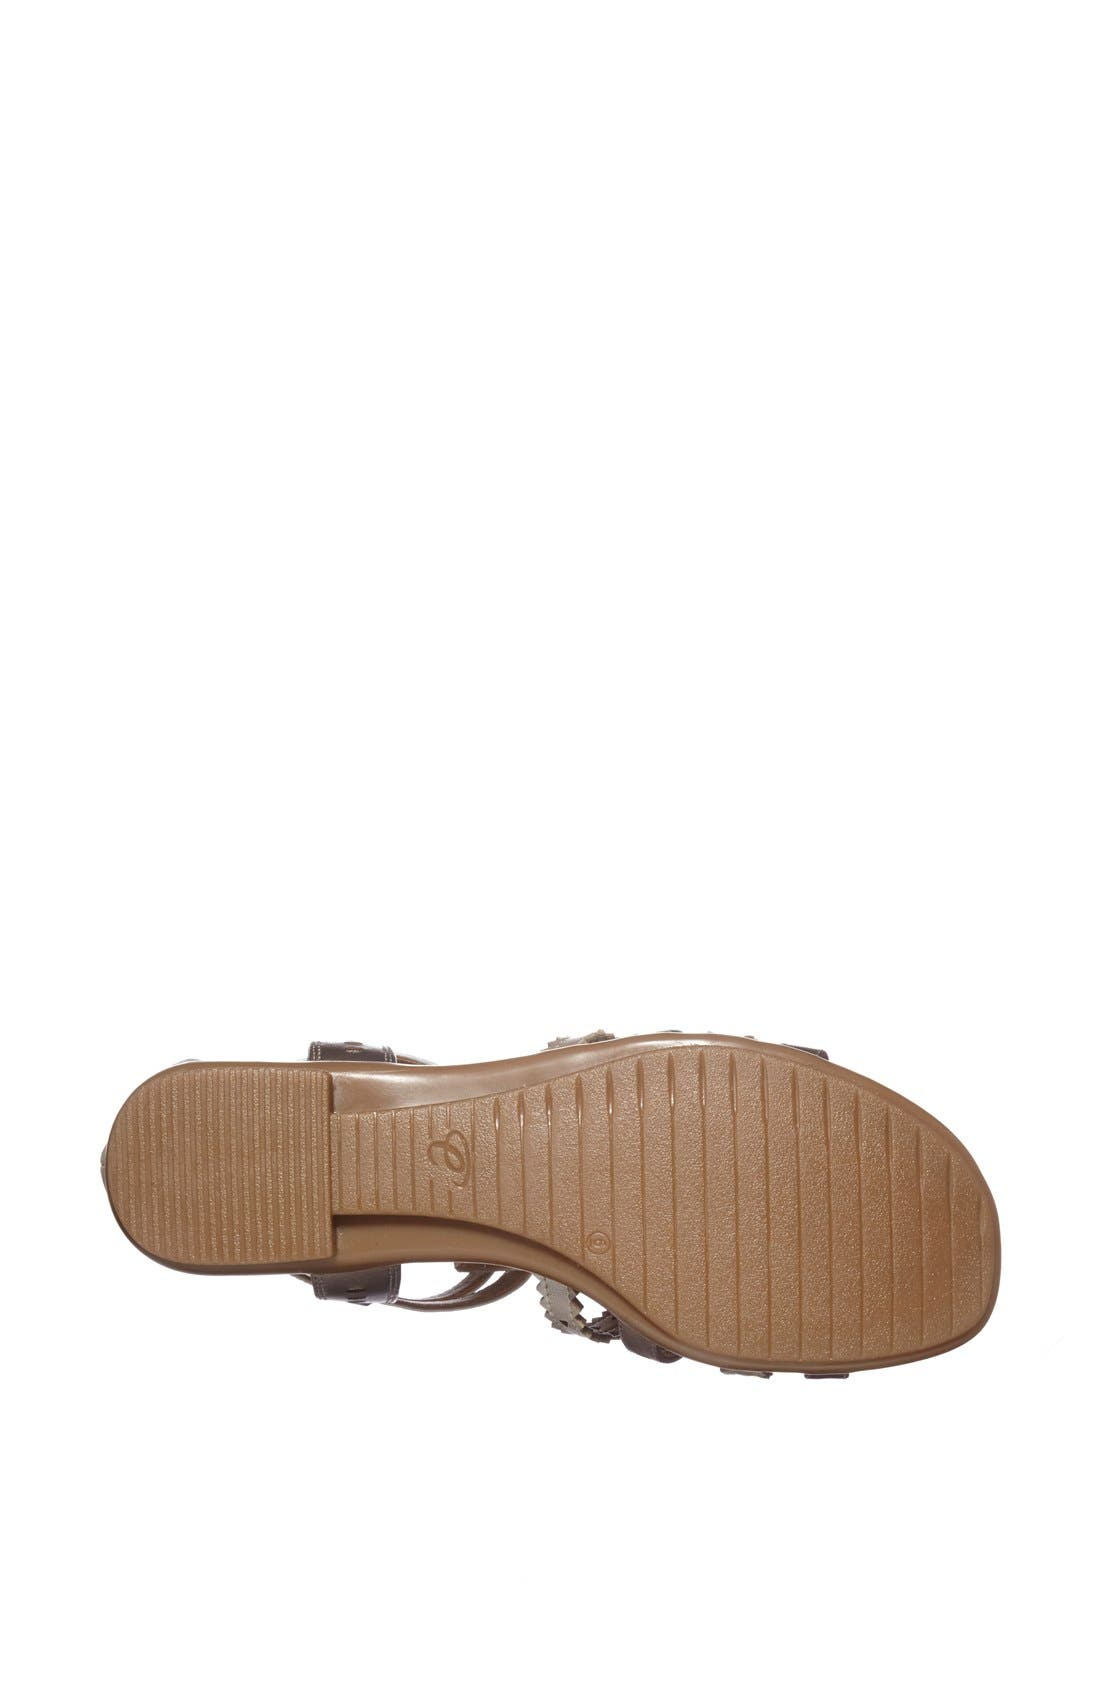 Alternate Image 4  - Easy Spirit 'e360 - Karelly' Pinked & Perforated Leather Back Zip Sandal (Women)